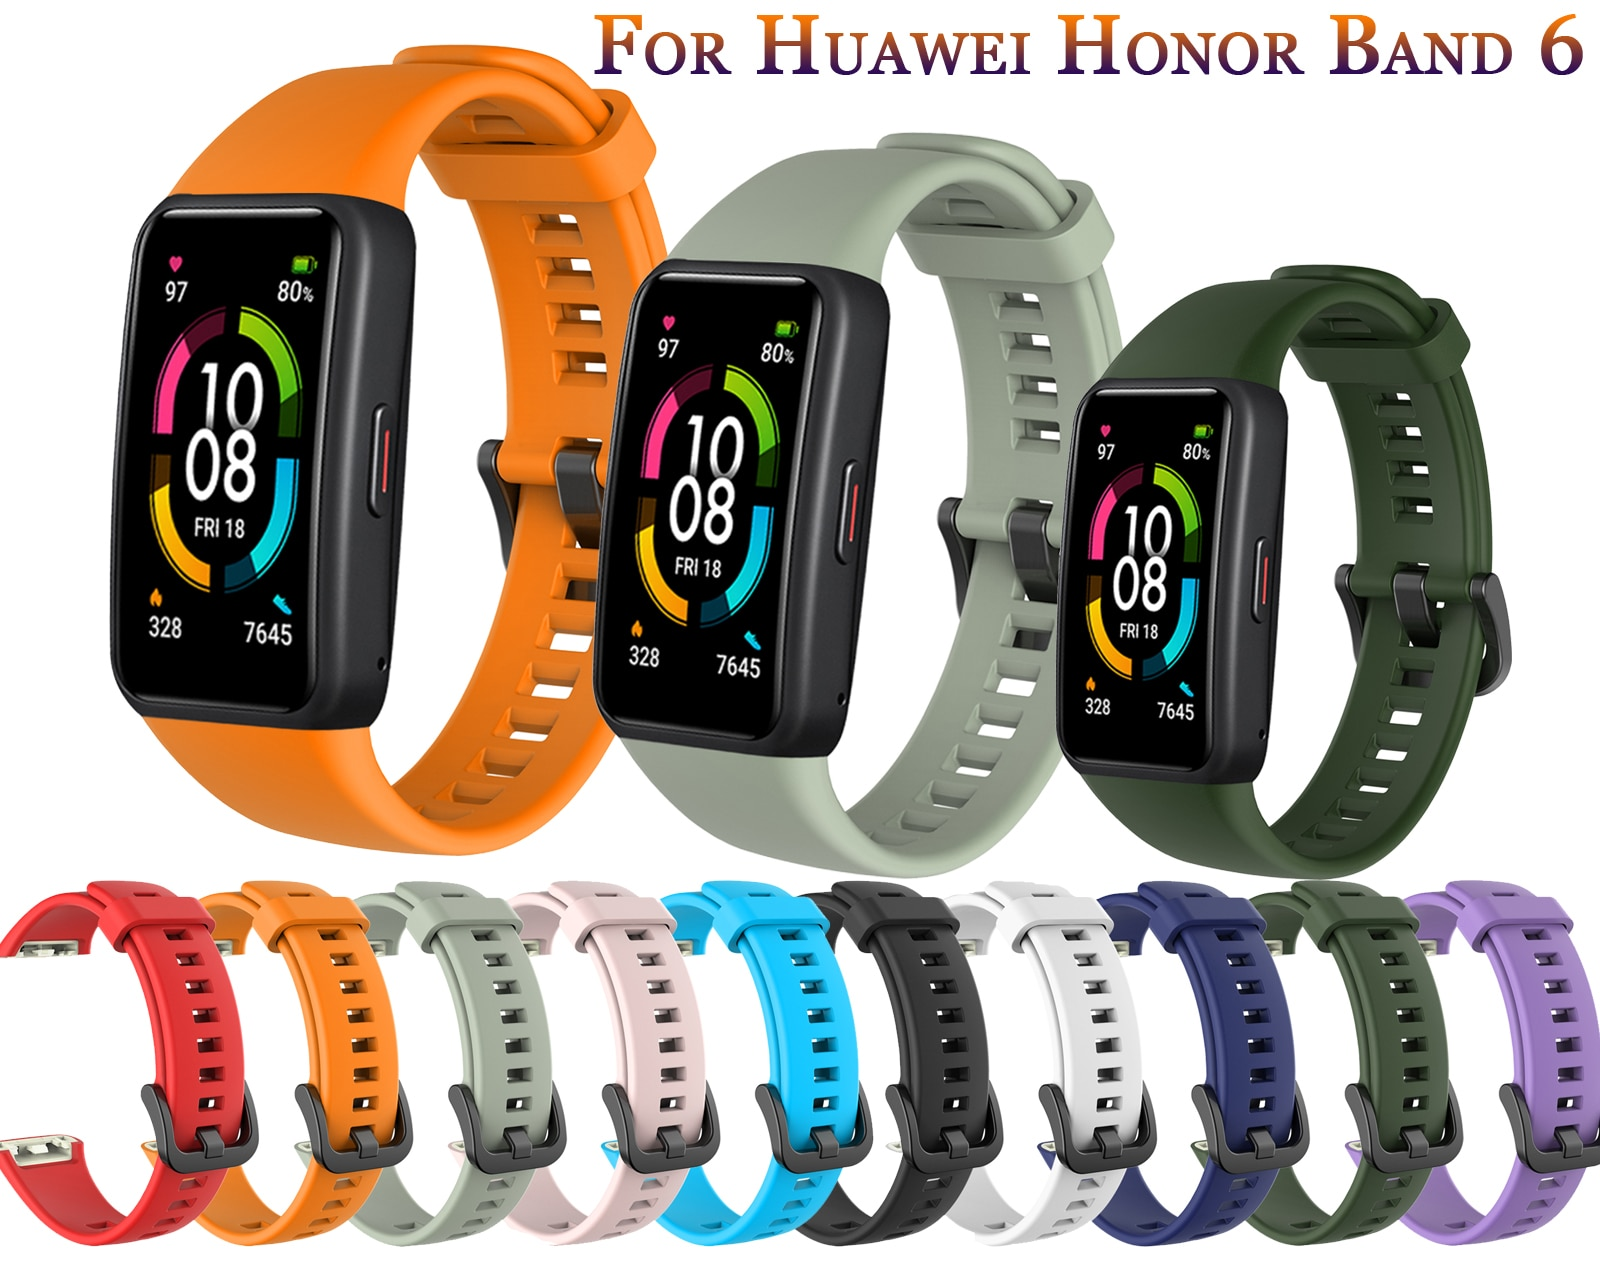 Correas de silicona para reloj inteligente Huawei Honor Band 6, repuesto colorido...